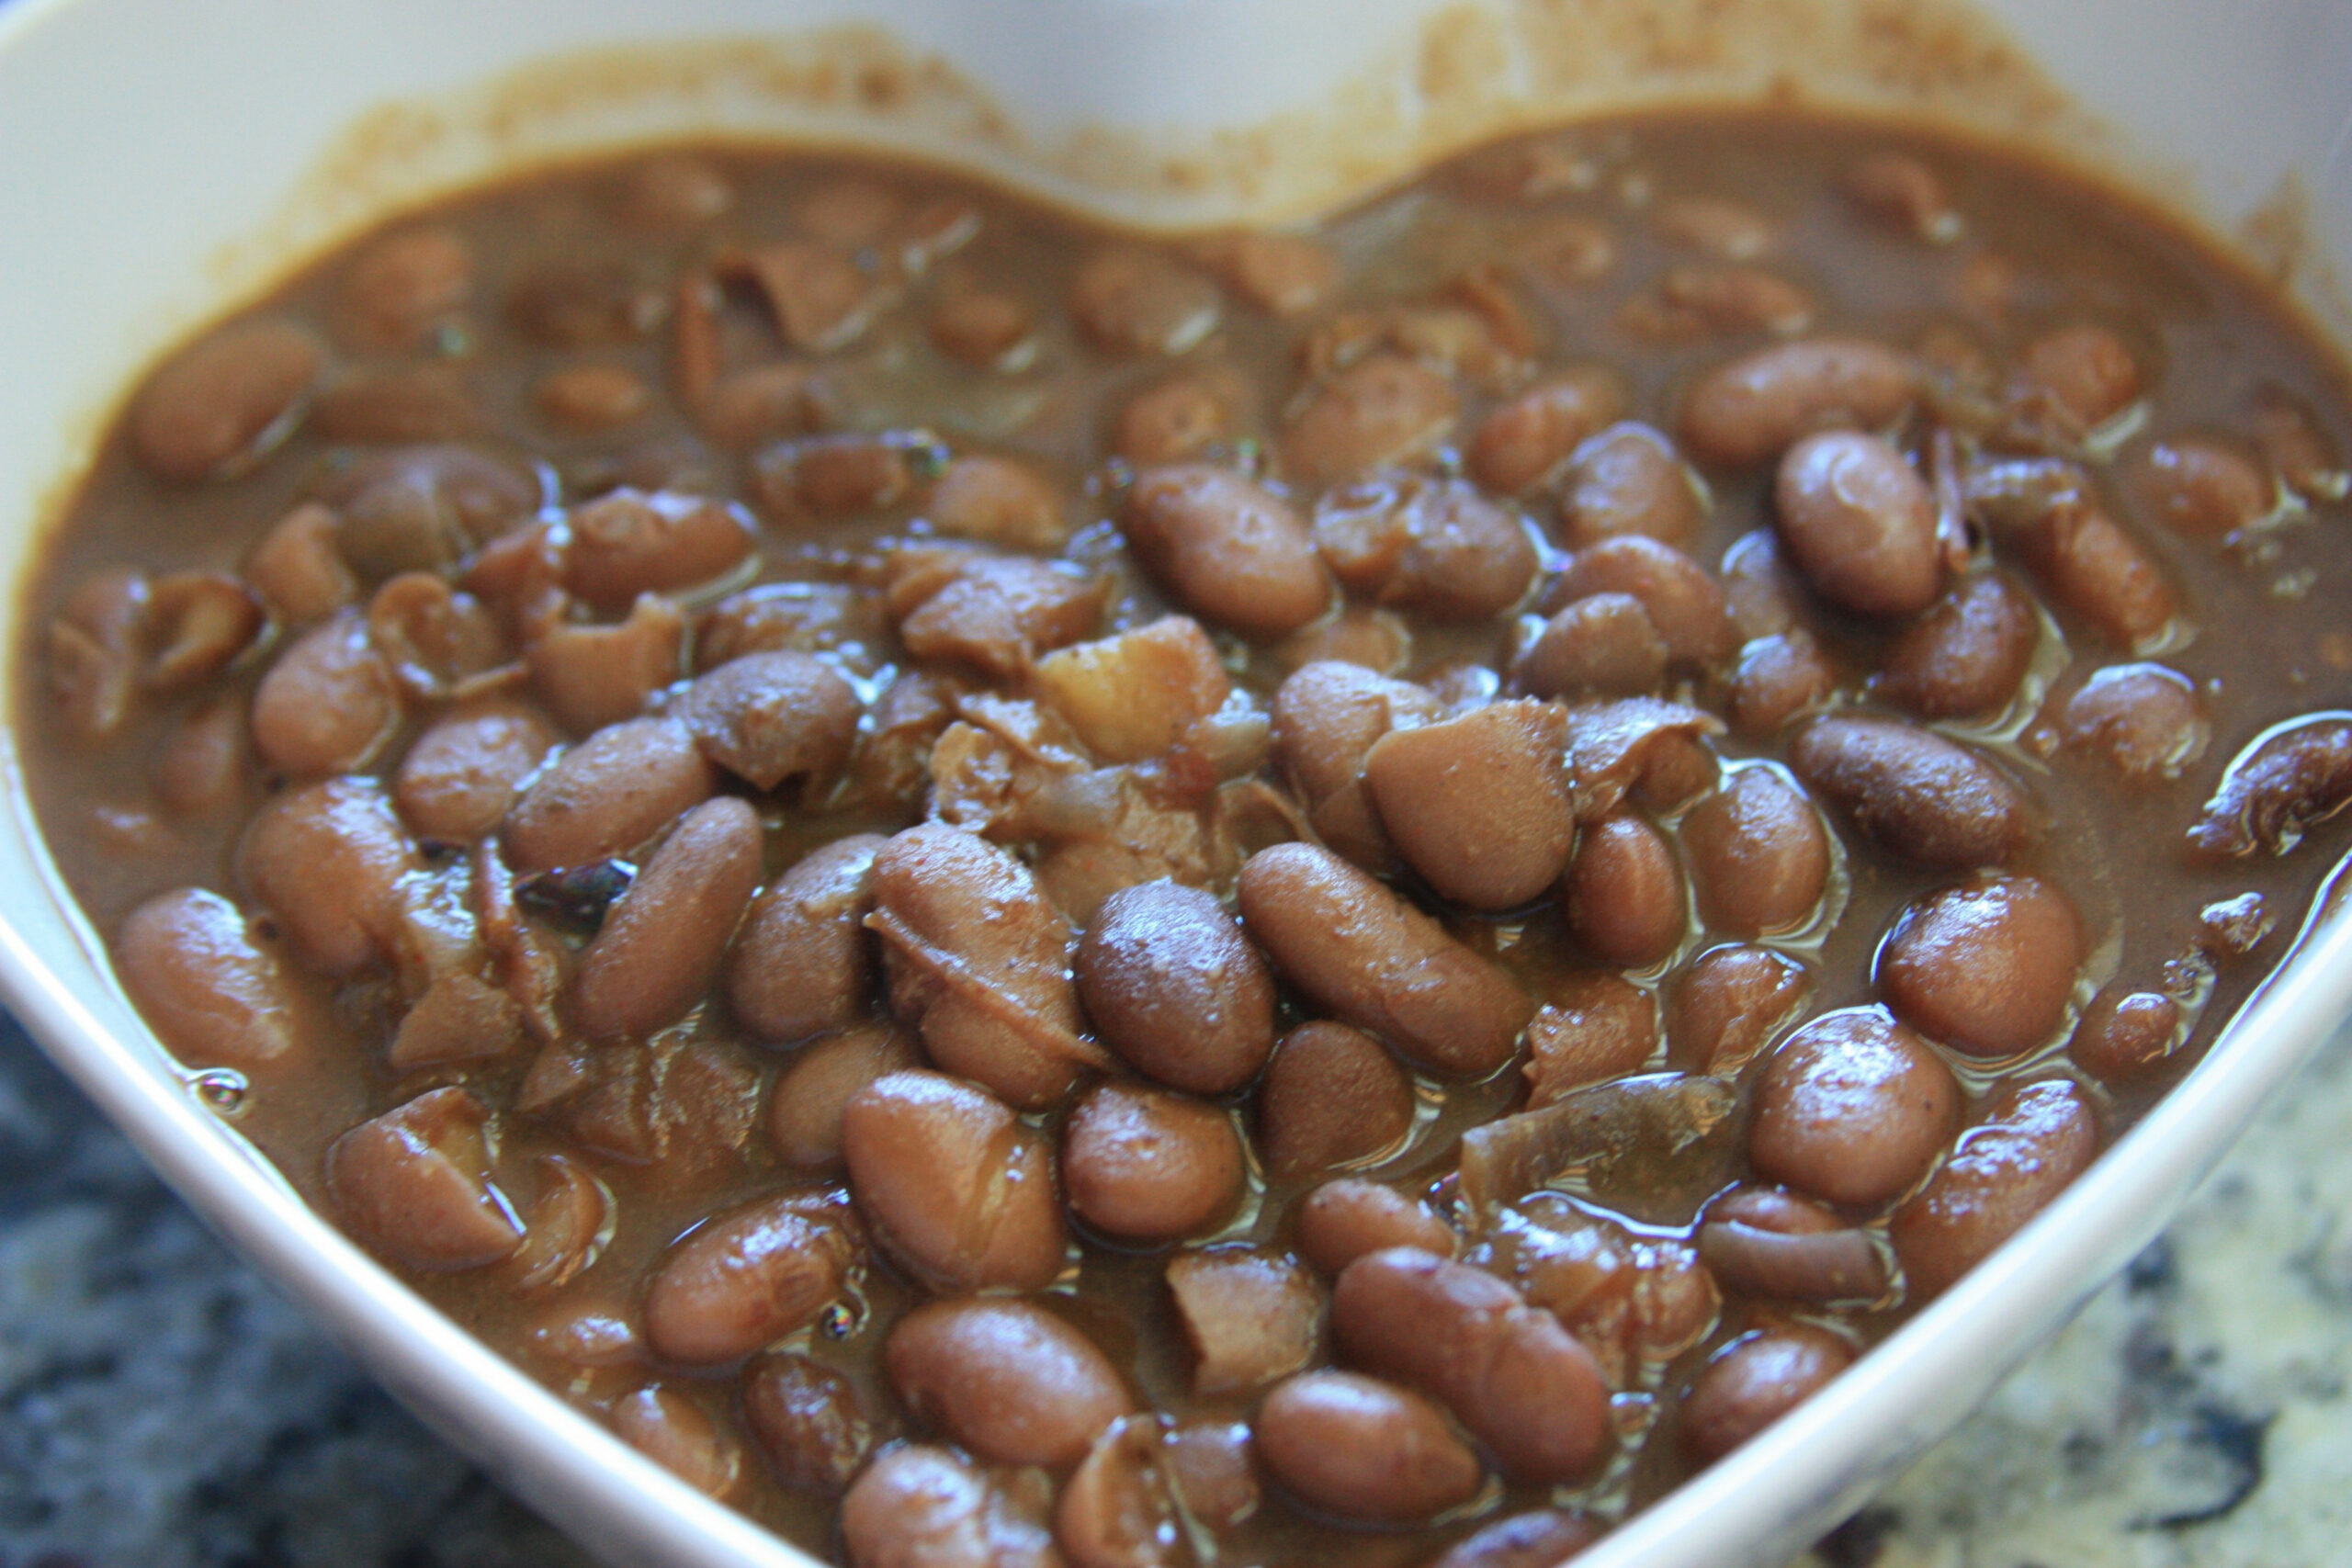 Healthy Recipes Pinto Beans Cooking Essentials Convection Oven - recipes pinto beans vegetarian